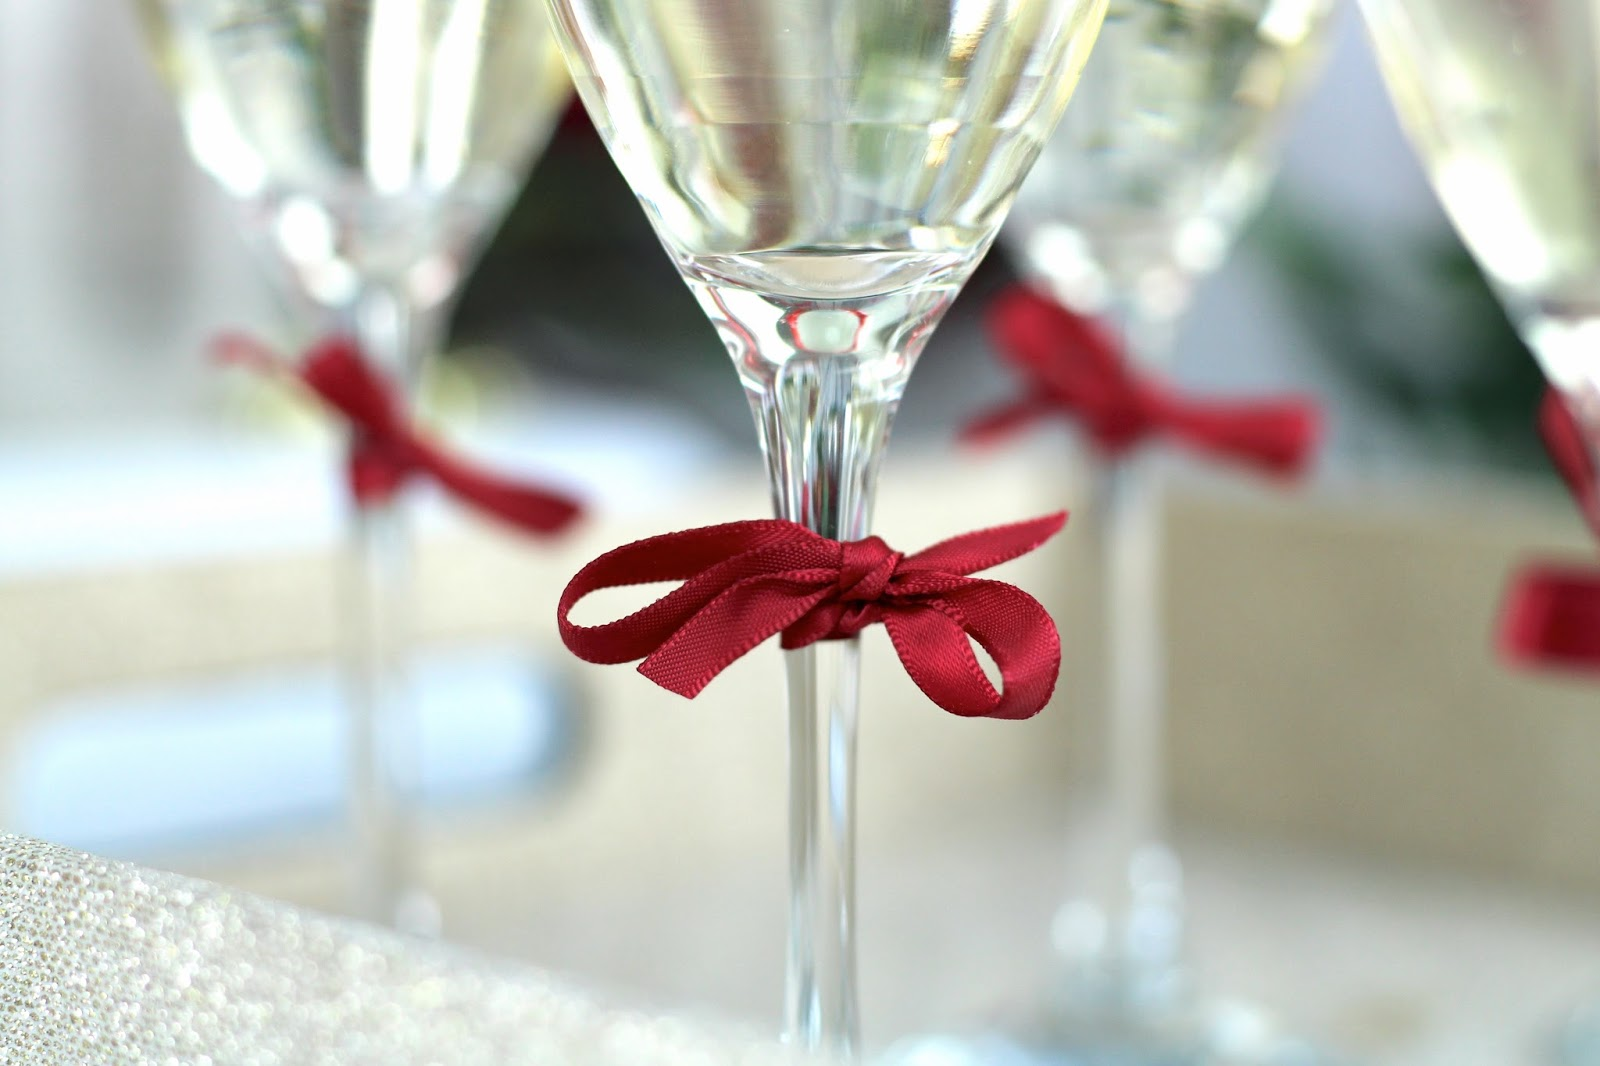 Red decorative bows on festive champagne flutes